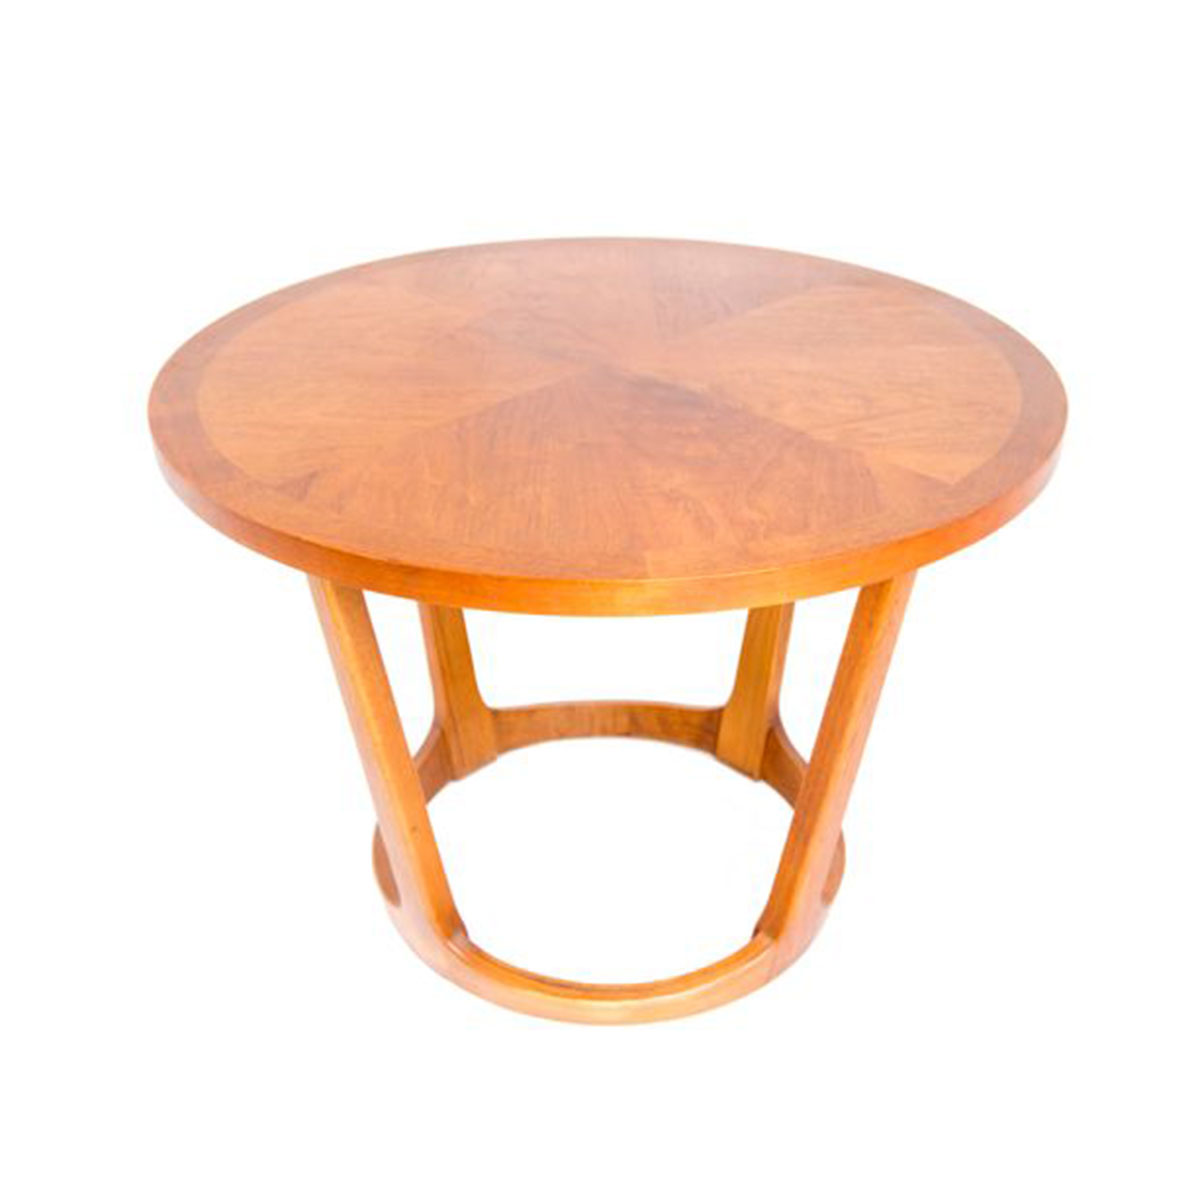 Round Mid Century Modern Coffee / Side Table